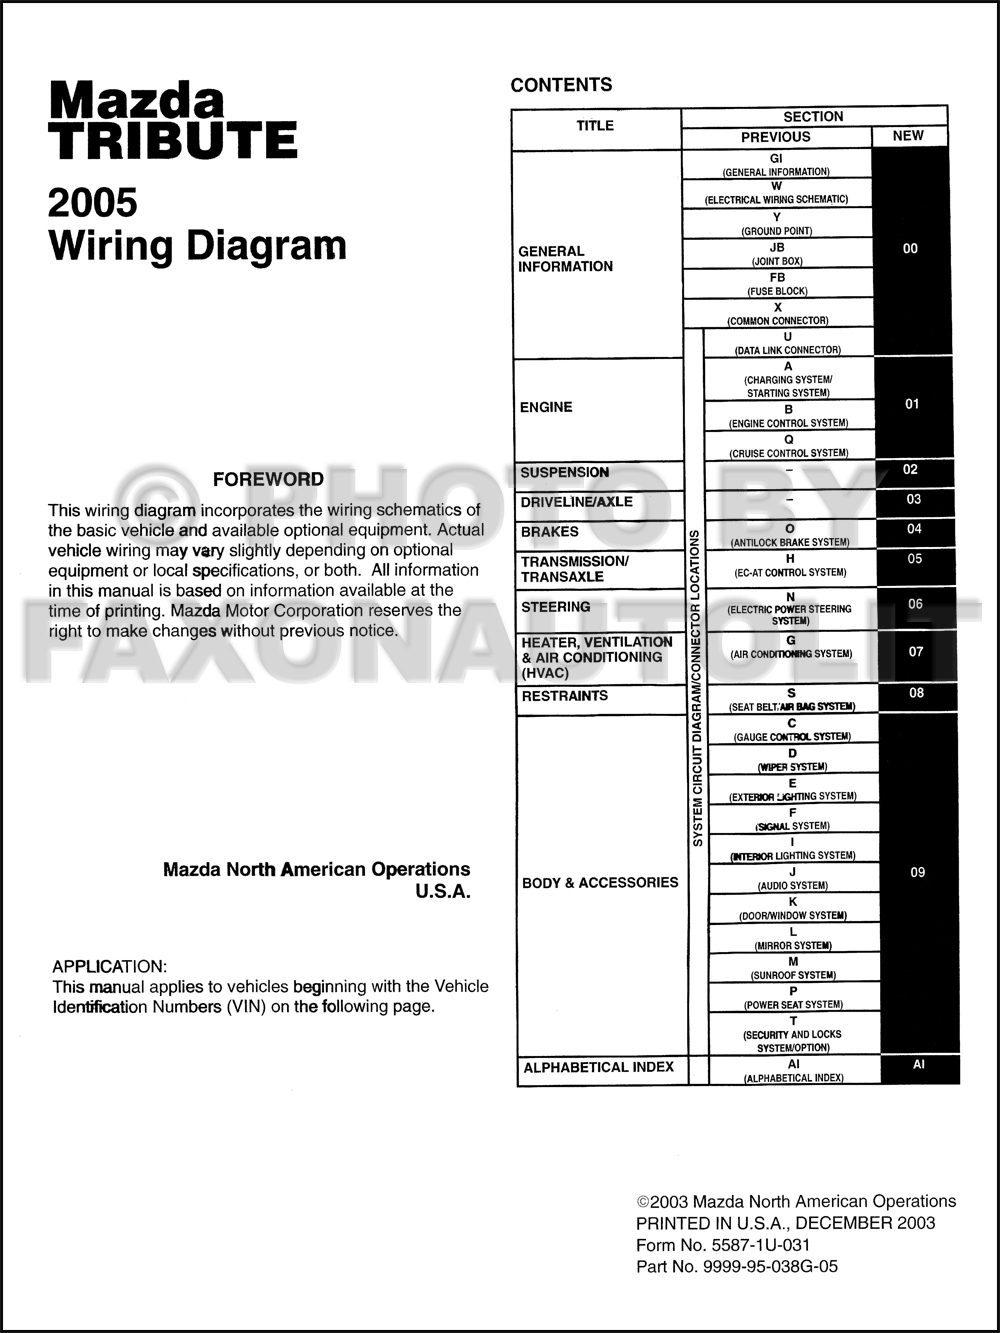 2005 Mazda Tribute Wiring Diagram Schematics Diagrams Instructional Design Project Management Template Unique Example